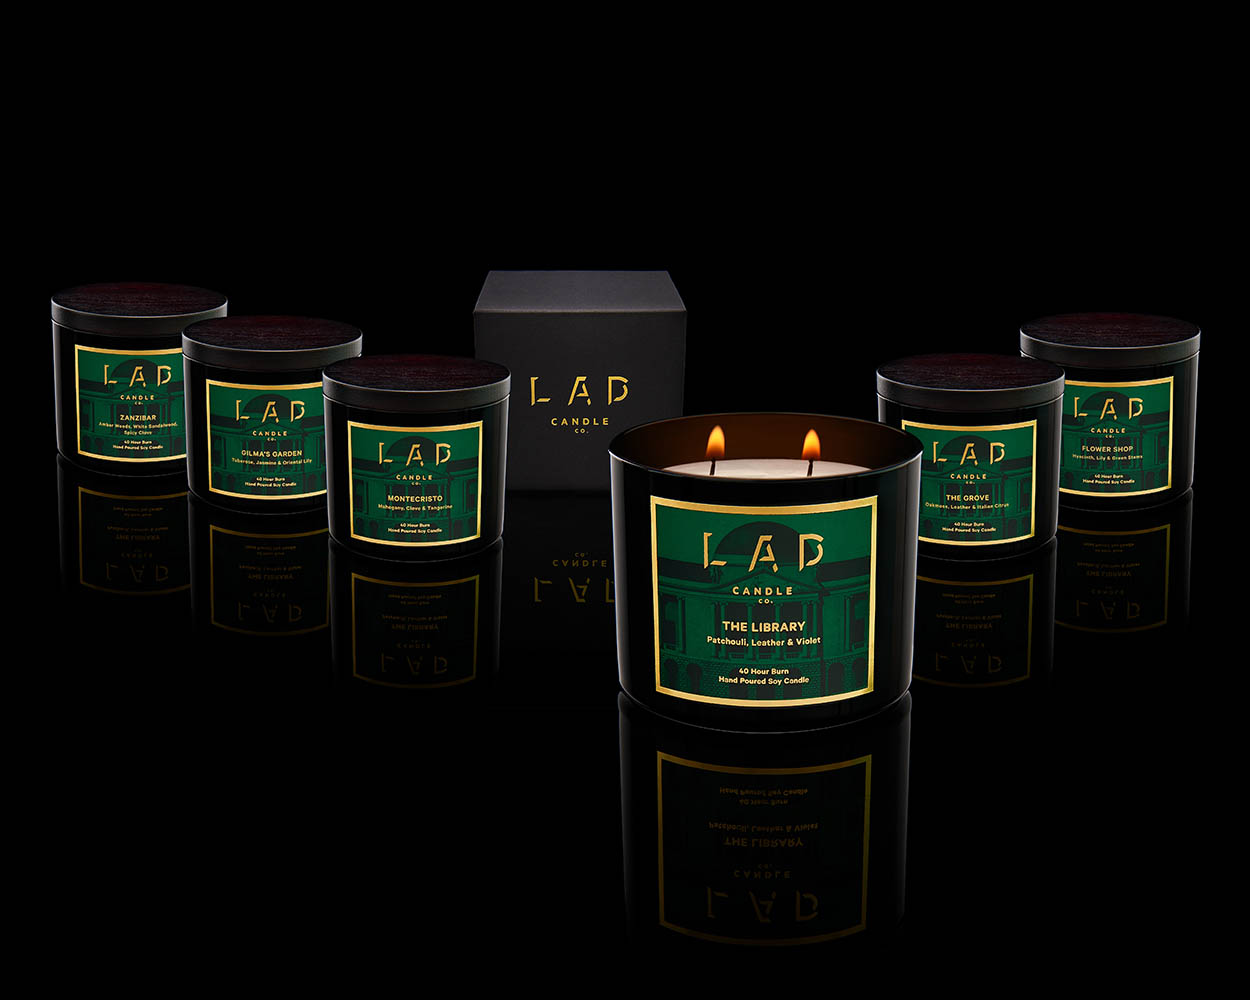 paul_christey_photography_brisbane_product_lad_candles_2_low-res